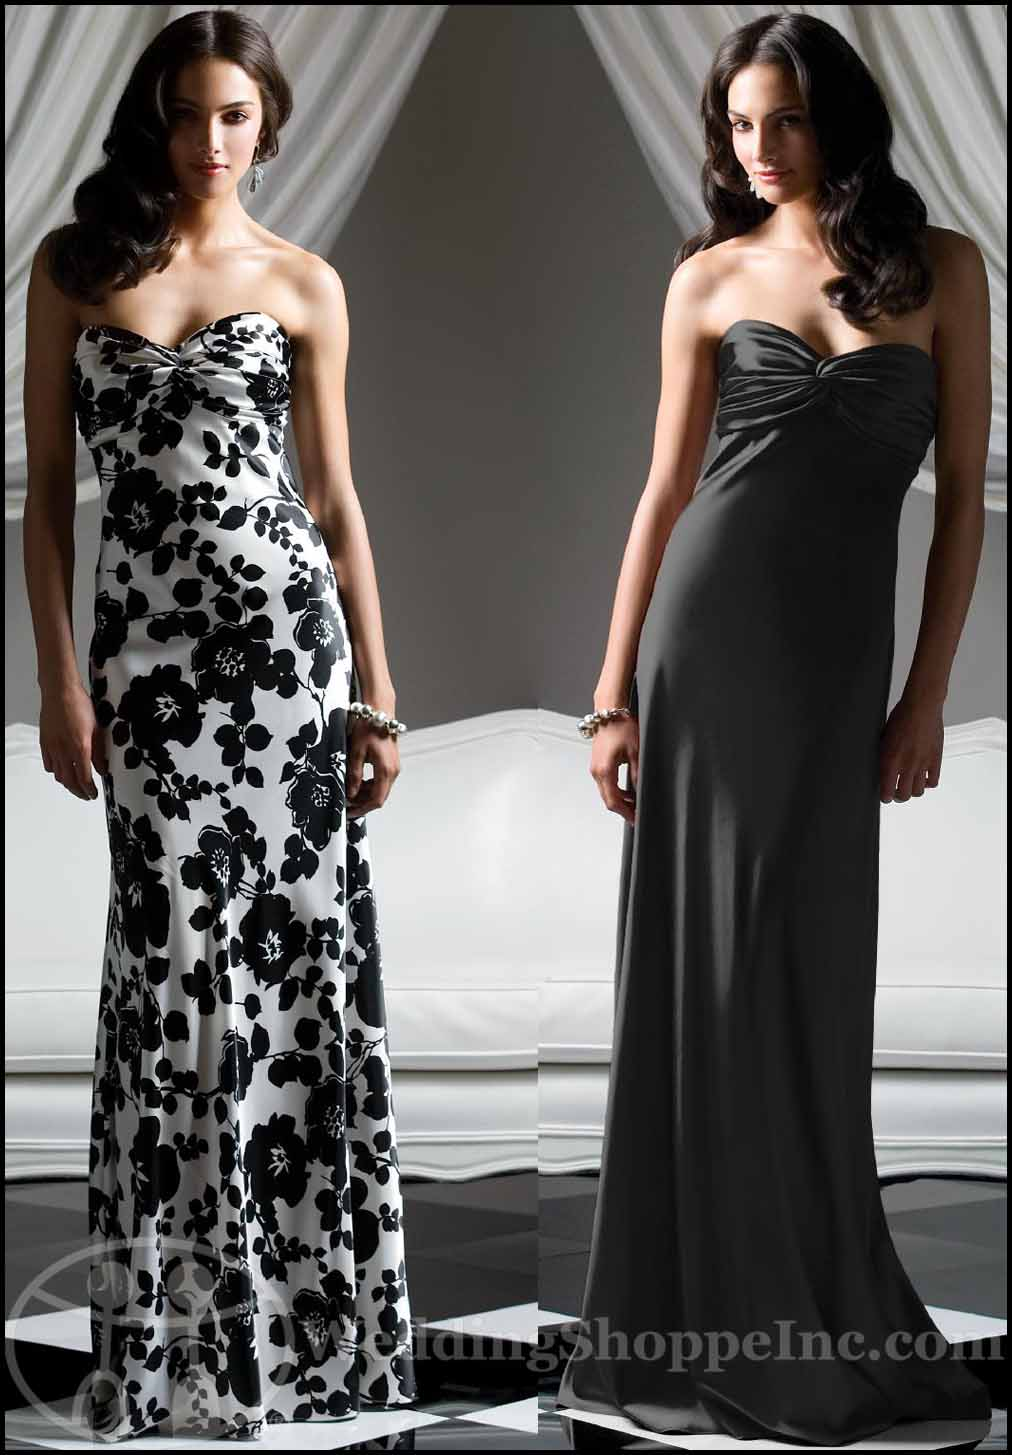 Black and White Bridesmaid Dresses: Dessy 2756